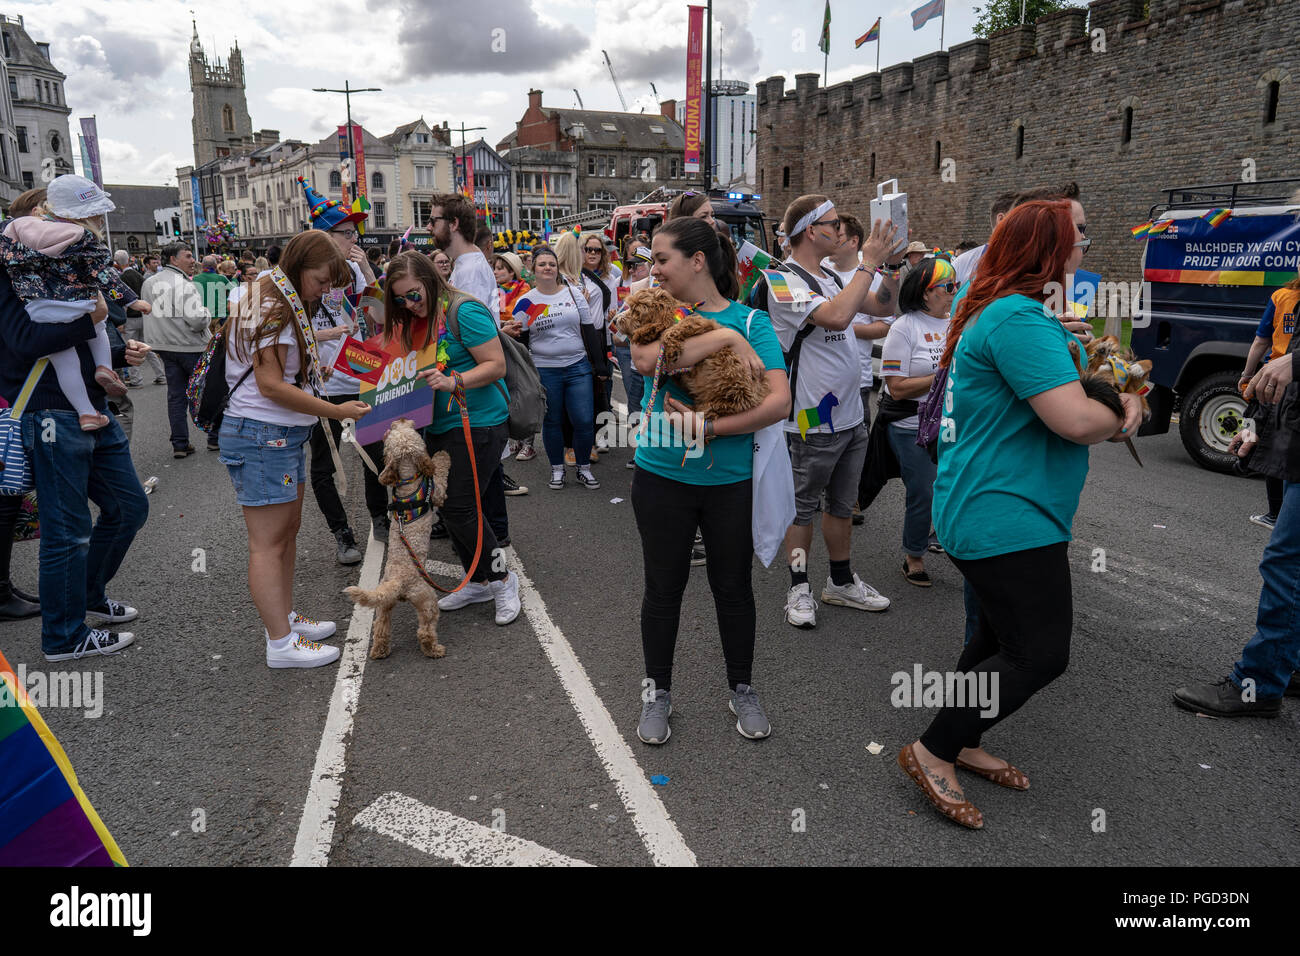 Cardiff, Wales, August 25, 2018: Marchers participate at the  Annual Pride Cymru Parade  in Cardiff, Wales on August 25, 2018 Credit: Daniel Damaschin/Alamy Live News - Stock Image